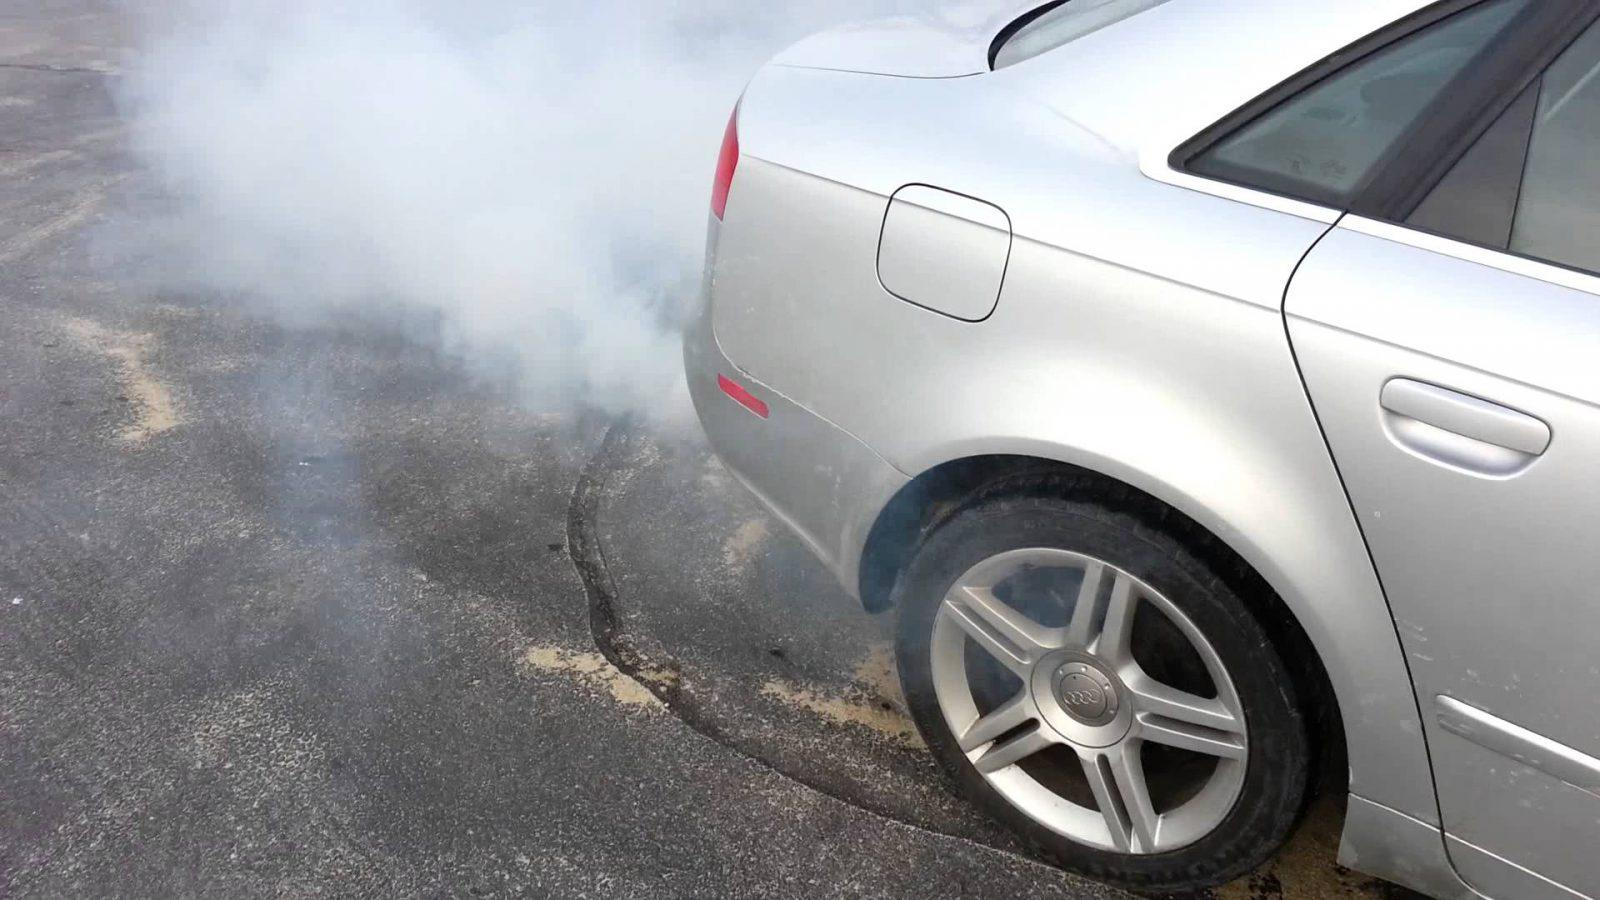 Exhaust Coming Out Of A Car ~ Oil coming out of exhaust and ways to troubleshoot car